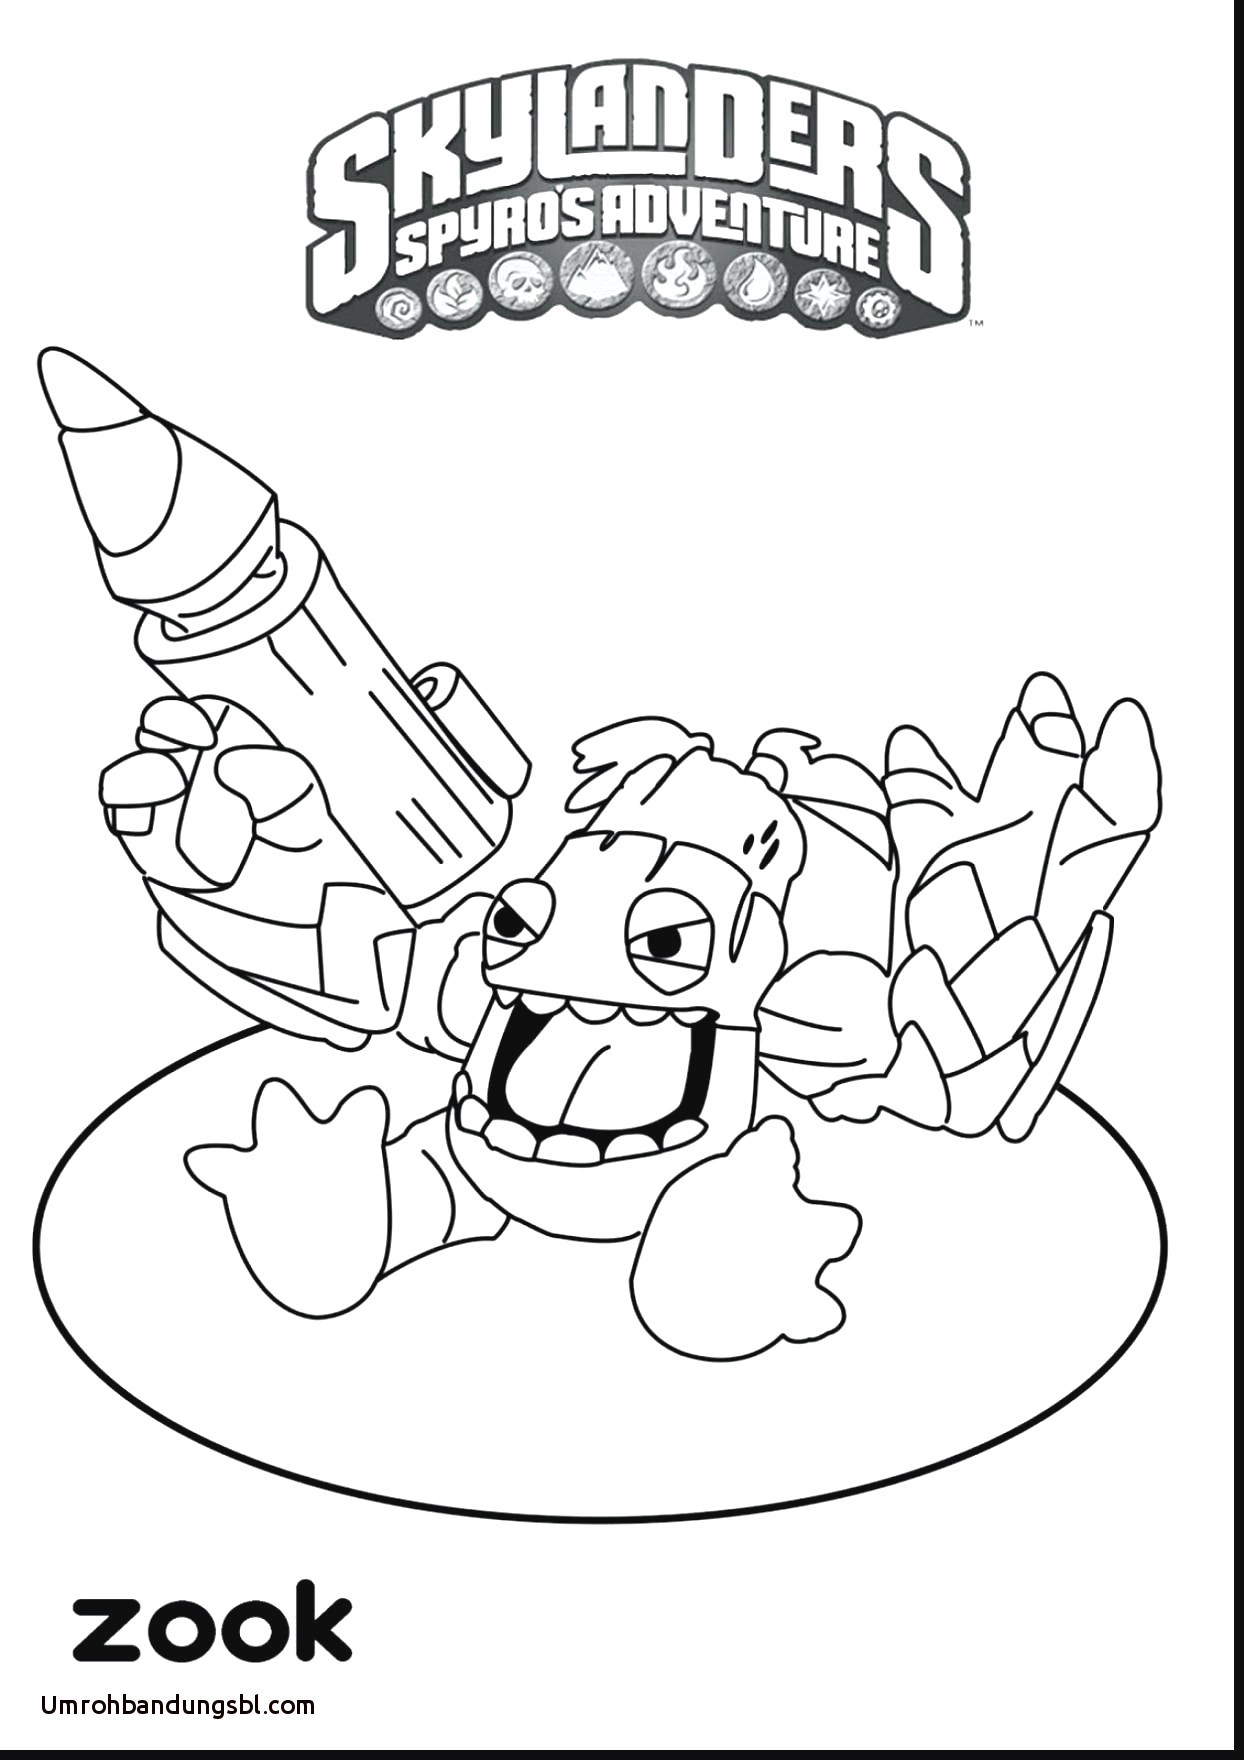 kid online coloring pages Collection-Harvest Coloring Pages Luxury Fox Coloring Pages Elegant Page Coloring 0d Modokom – Fun Time 13-n